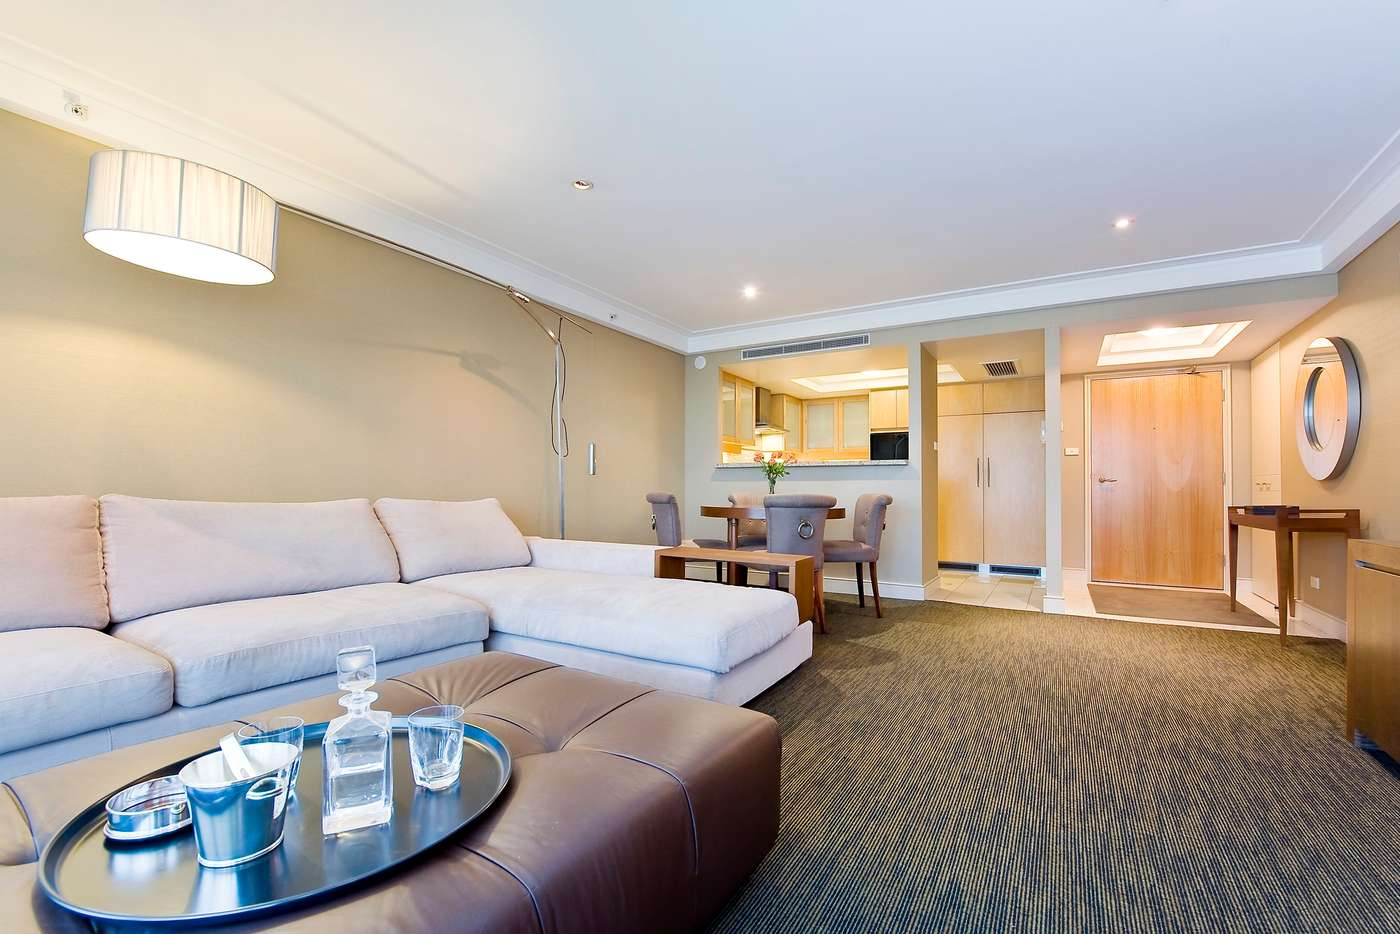 Third view of Homely apartment listing, 82/5 Macquarie Street, Sydney NSW 2000